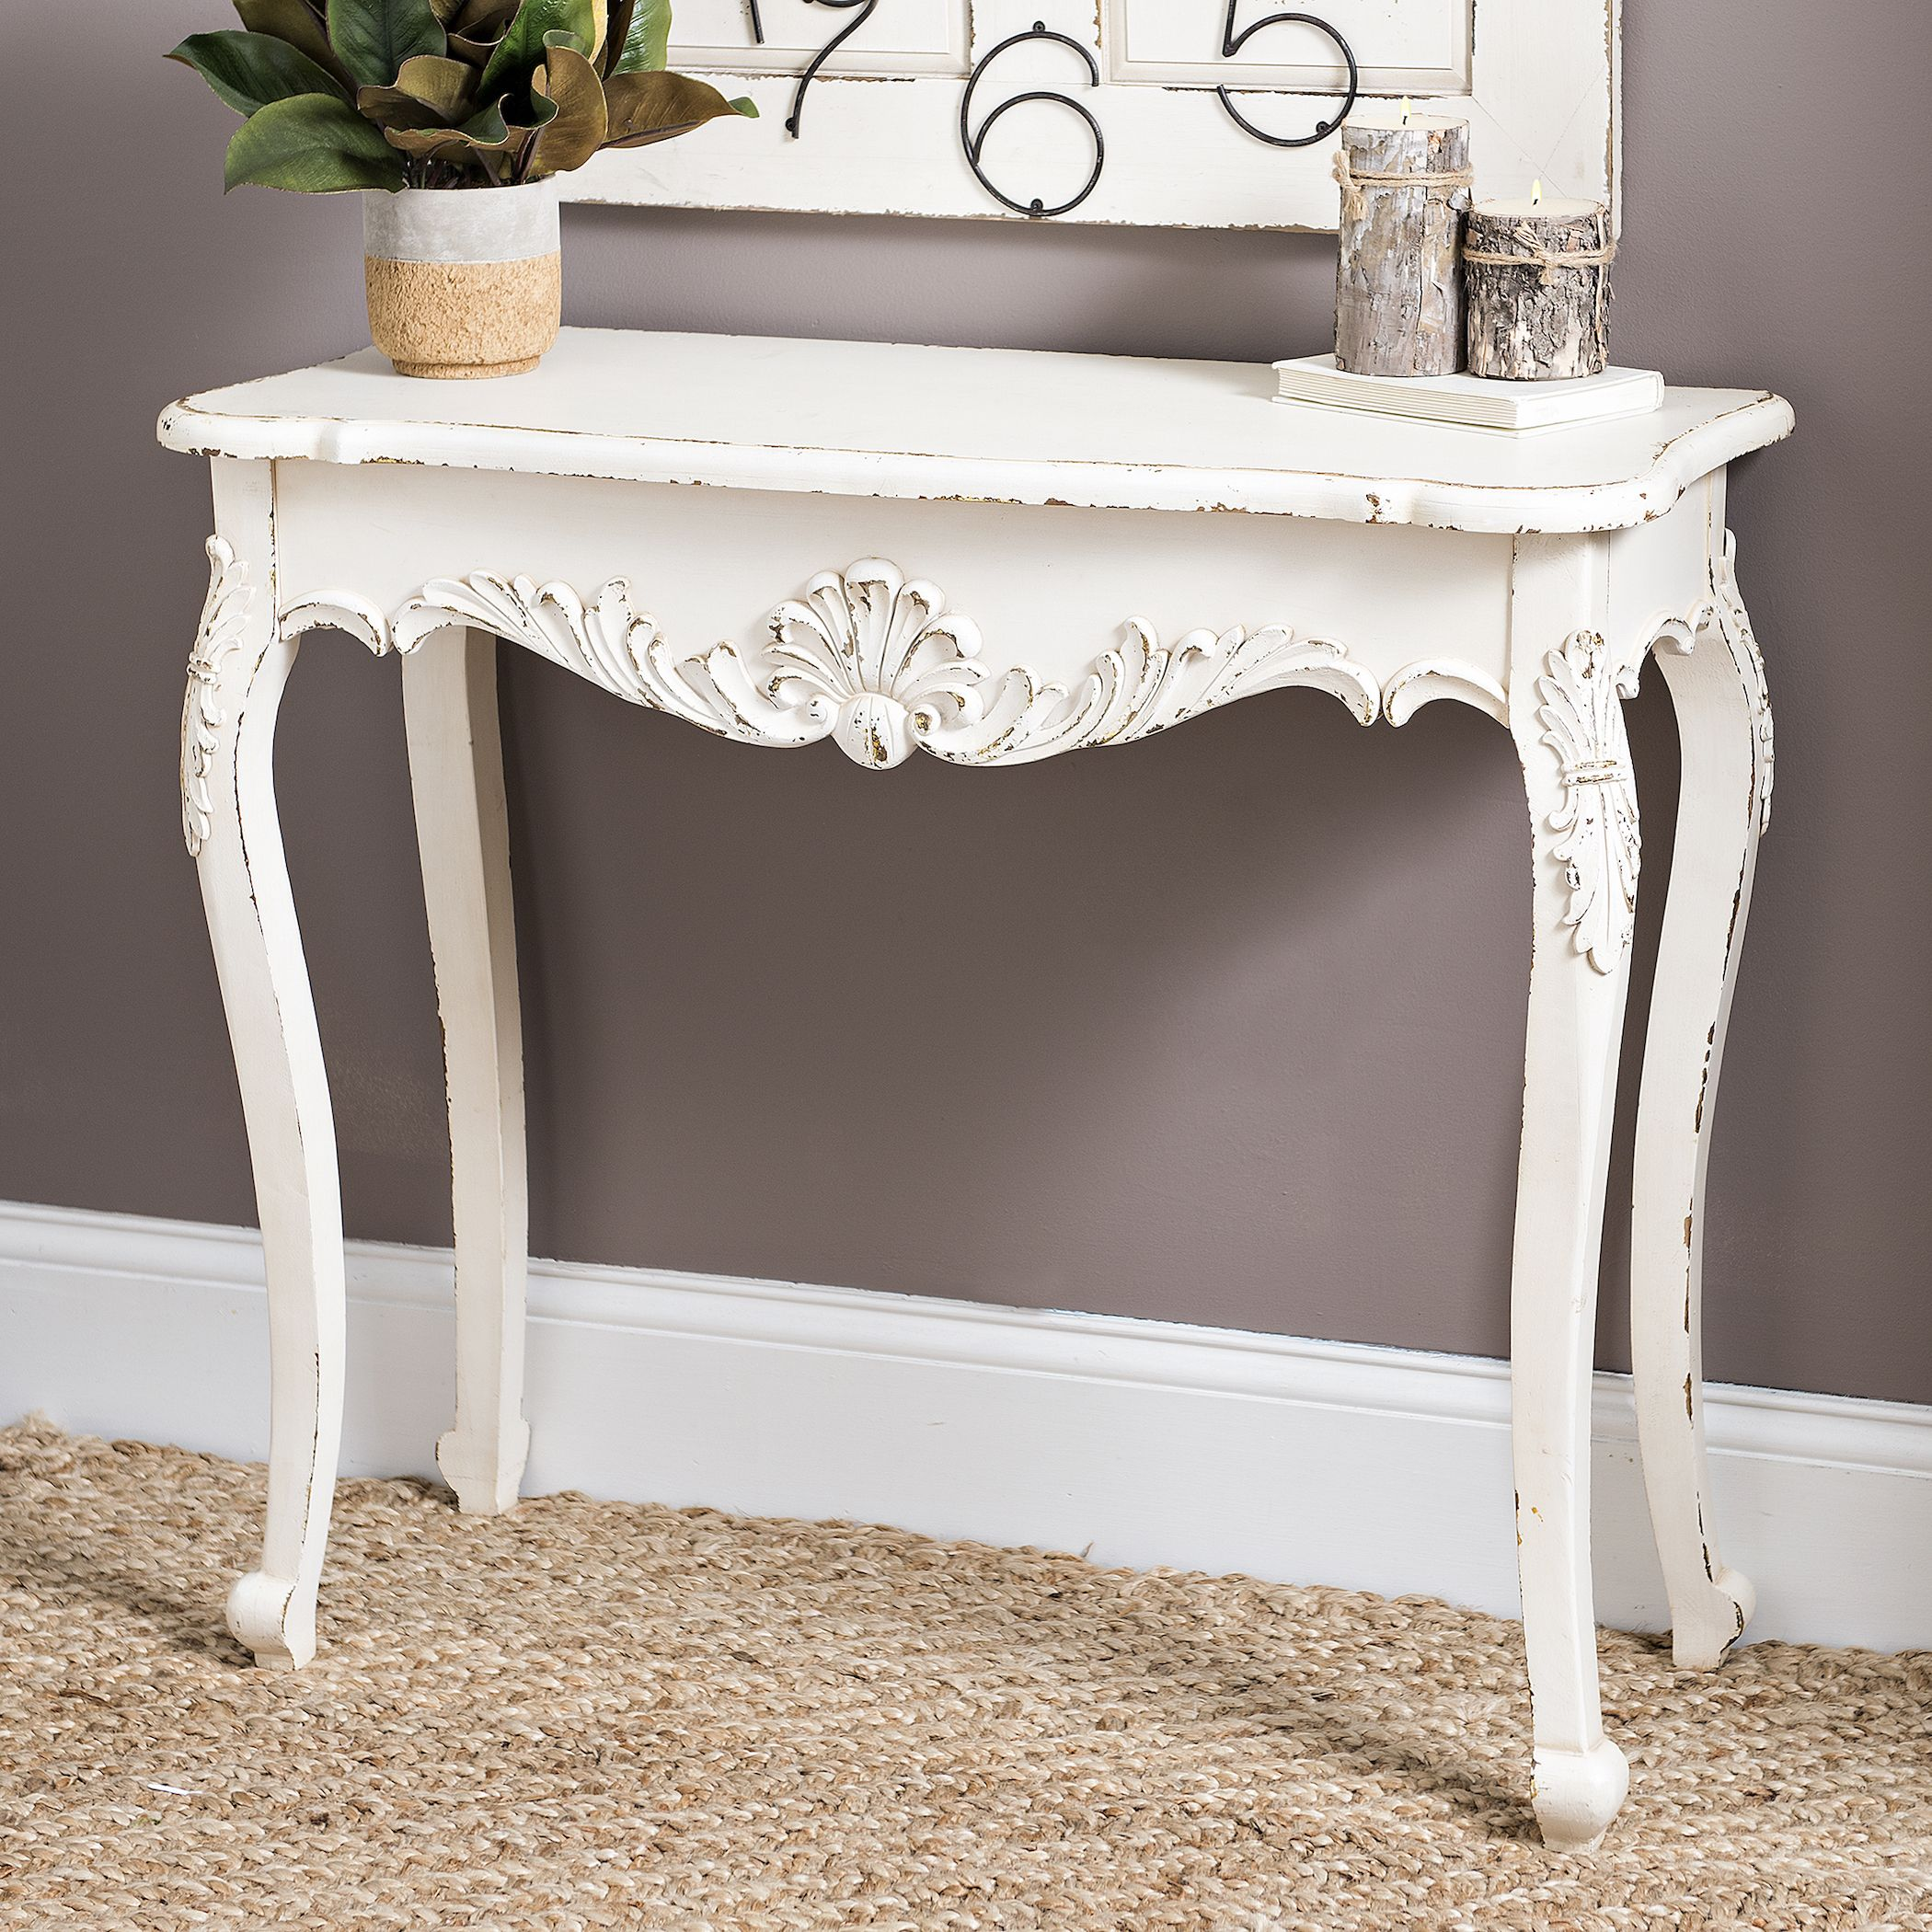 Create A Cheery Entryway With Vintage Charm Antique Console Table Wood Console Table White Console Table